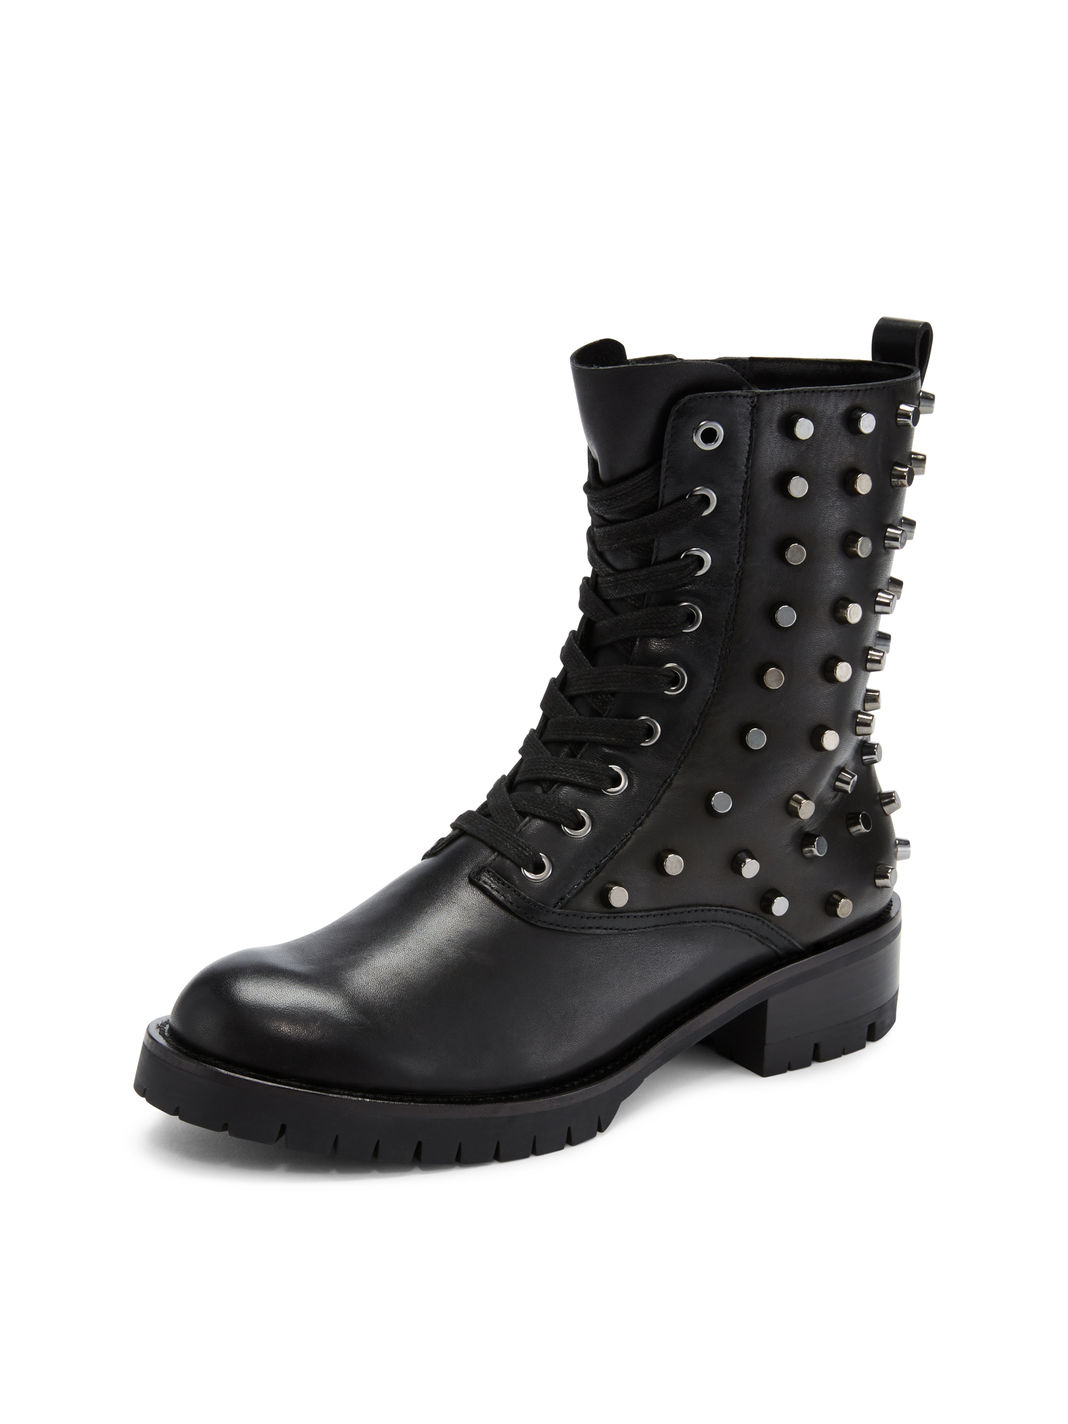 Dkny Melissa Studded Lace Up Boot In Black Lyst